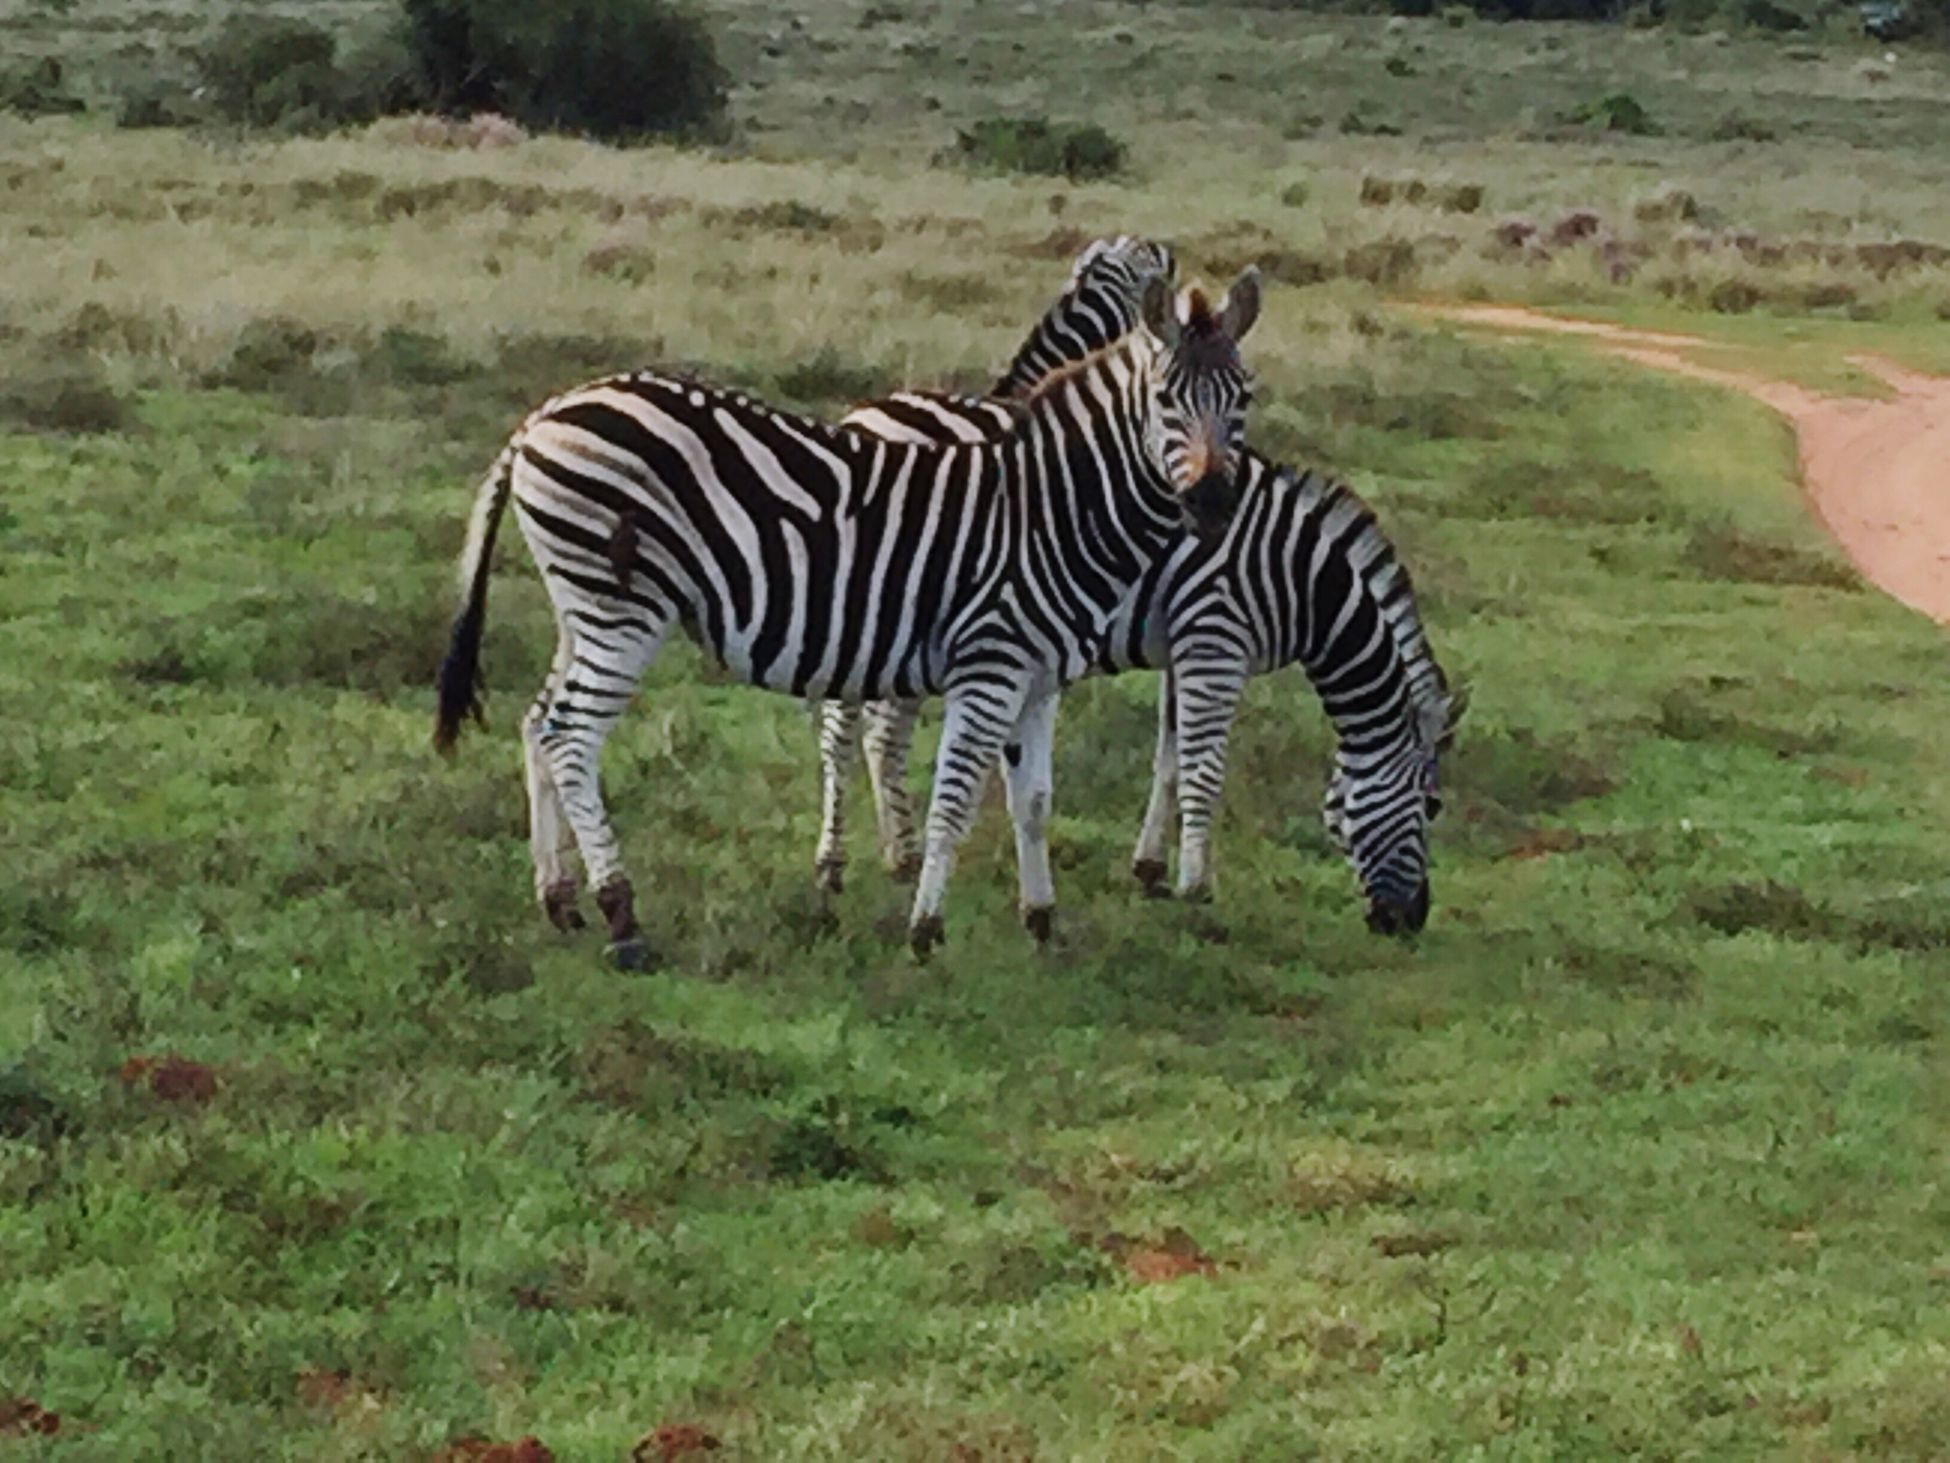 IPhoneography Amakhala Game Reserve Zebra Grazing On The Plains Feeding Time Stripes Everywhere South Africa Animals In The Wild